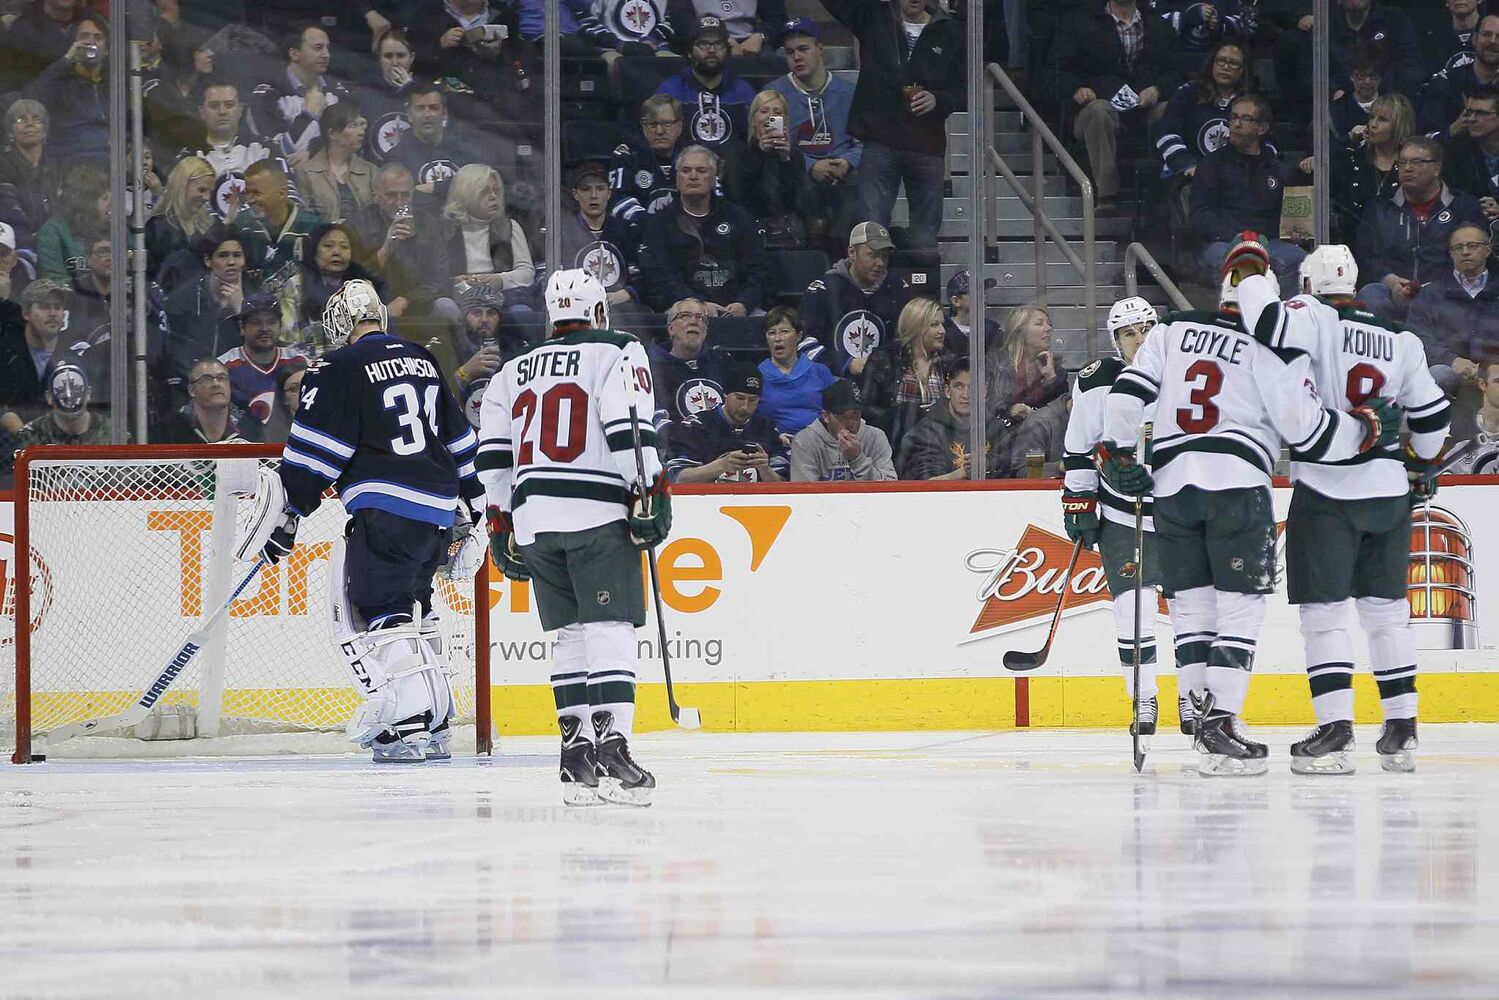 The Minnesota Wild's Ryan Suter (20), Zach Parise (11), Charlie Coyle (3) and Mikko Koivu (8) celebrate Coyle's goal as Winnipeg Jets goaltender Michael Hutchinson fishes the puck out of the net in the second period. (JOHN WOODS / WINNIPEG FREE PRESS)